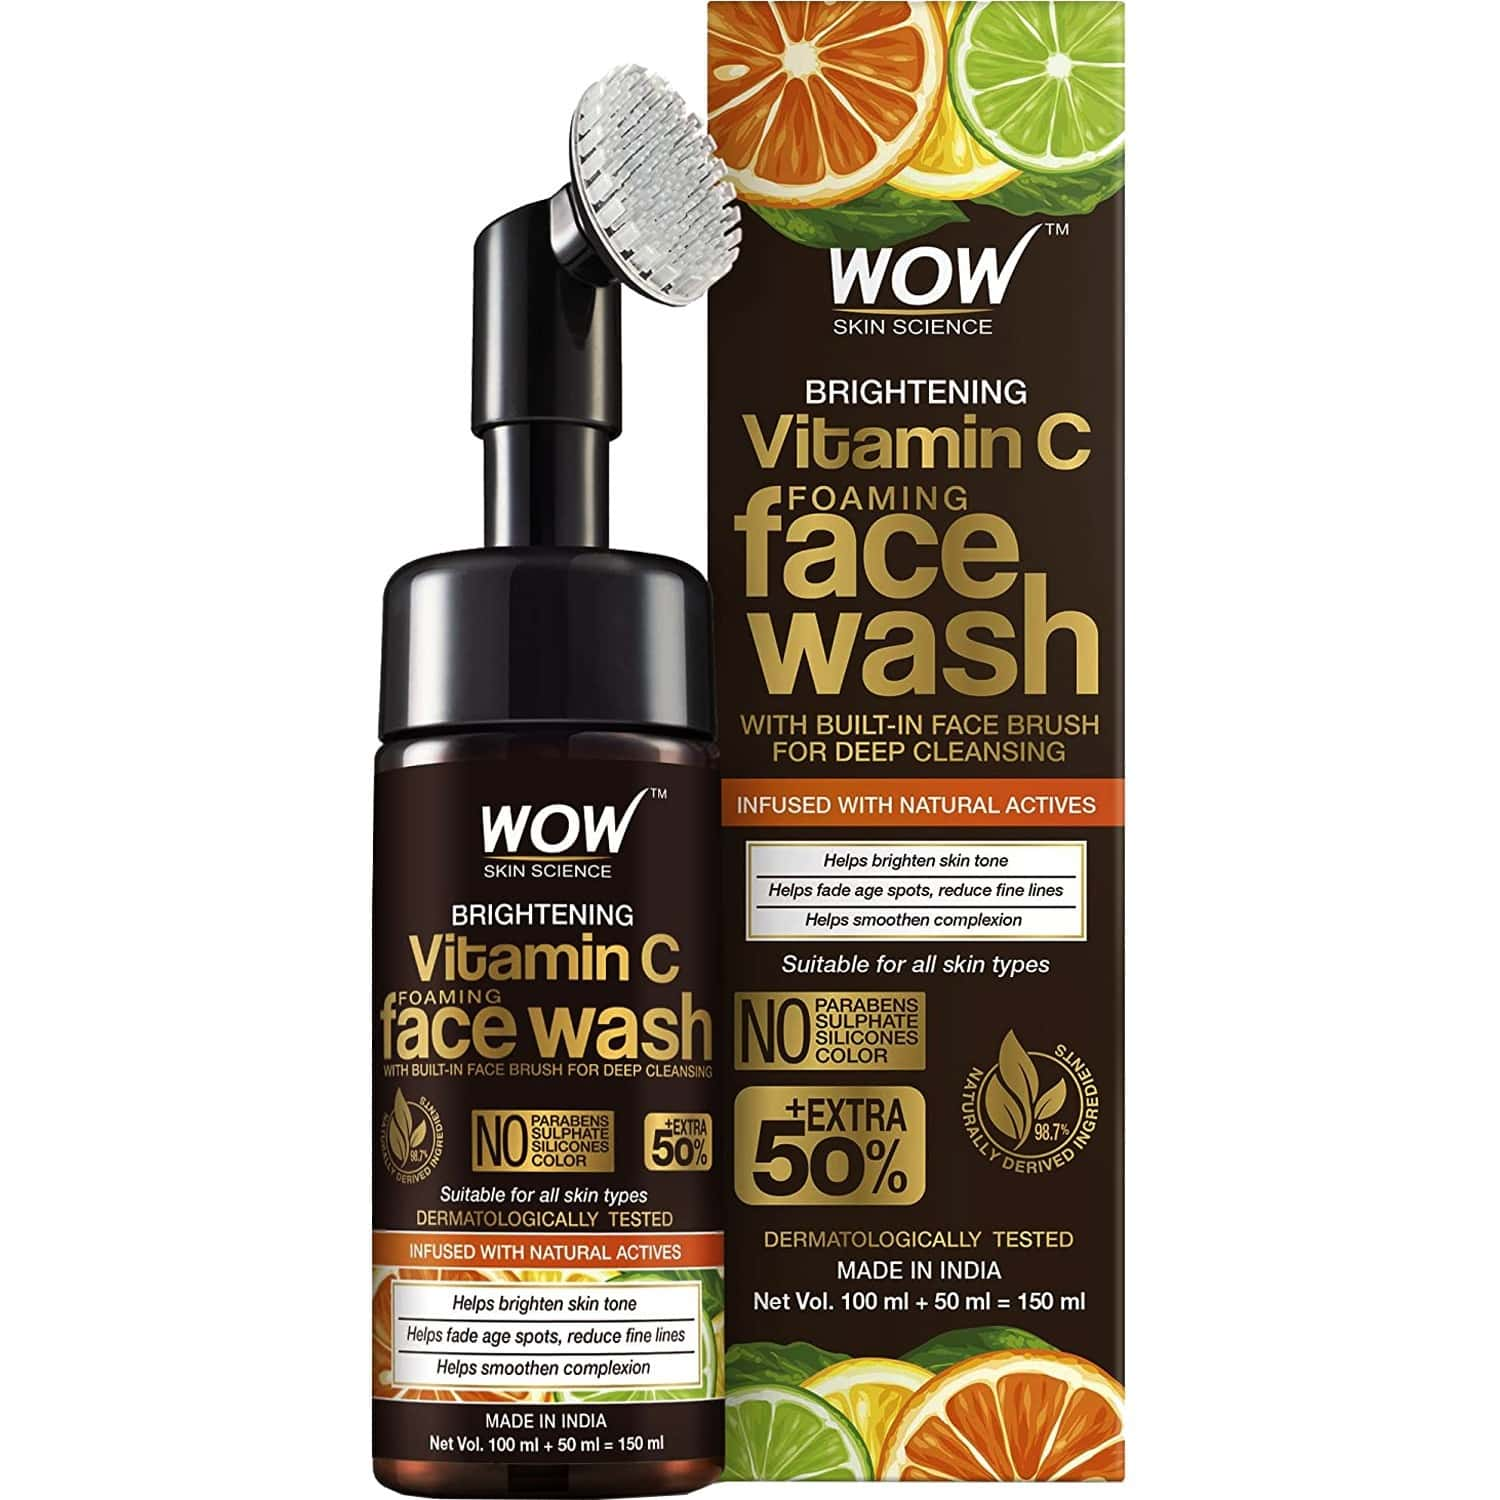 Wow Skin Science Brightening Vitamin C Foaming Face Wash (with Brush) - 150 Ml